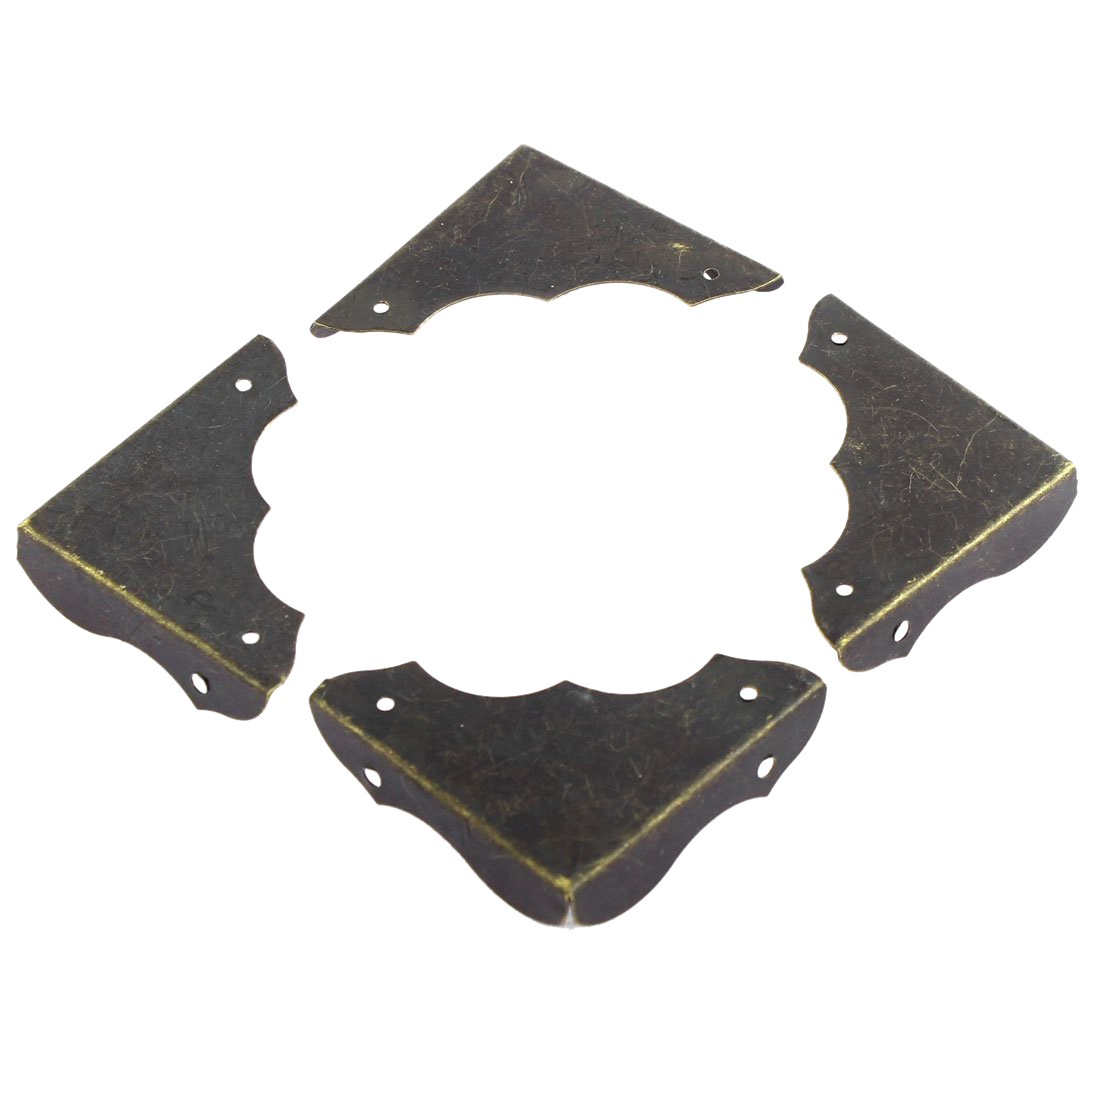 4 Pcs Metal Table Retro Style Corner Covers Protector 40mmx40mm Bronze